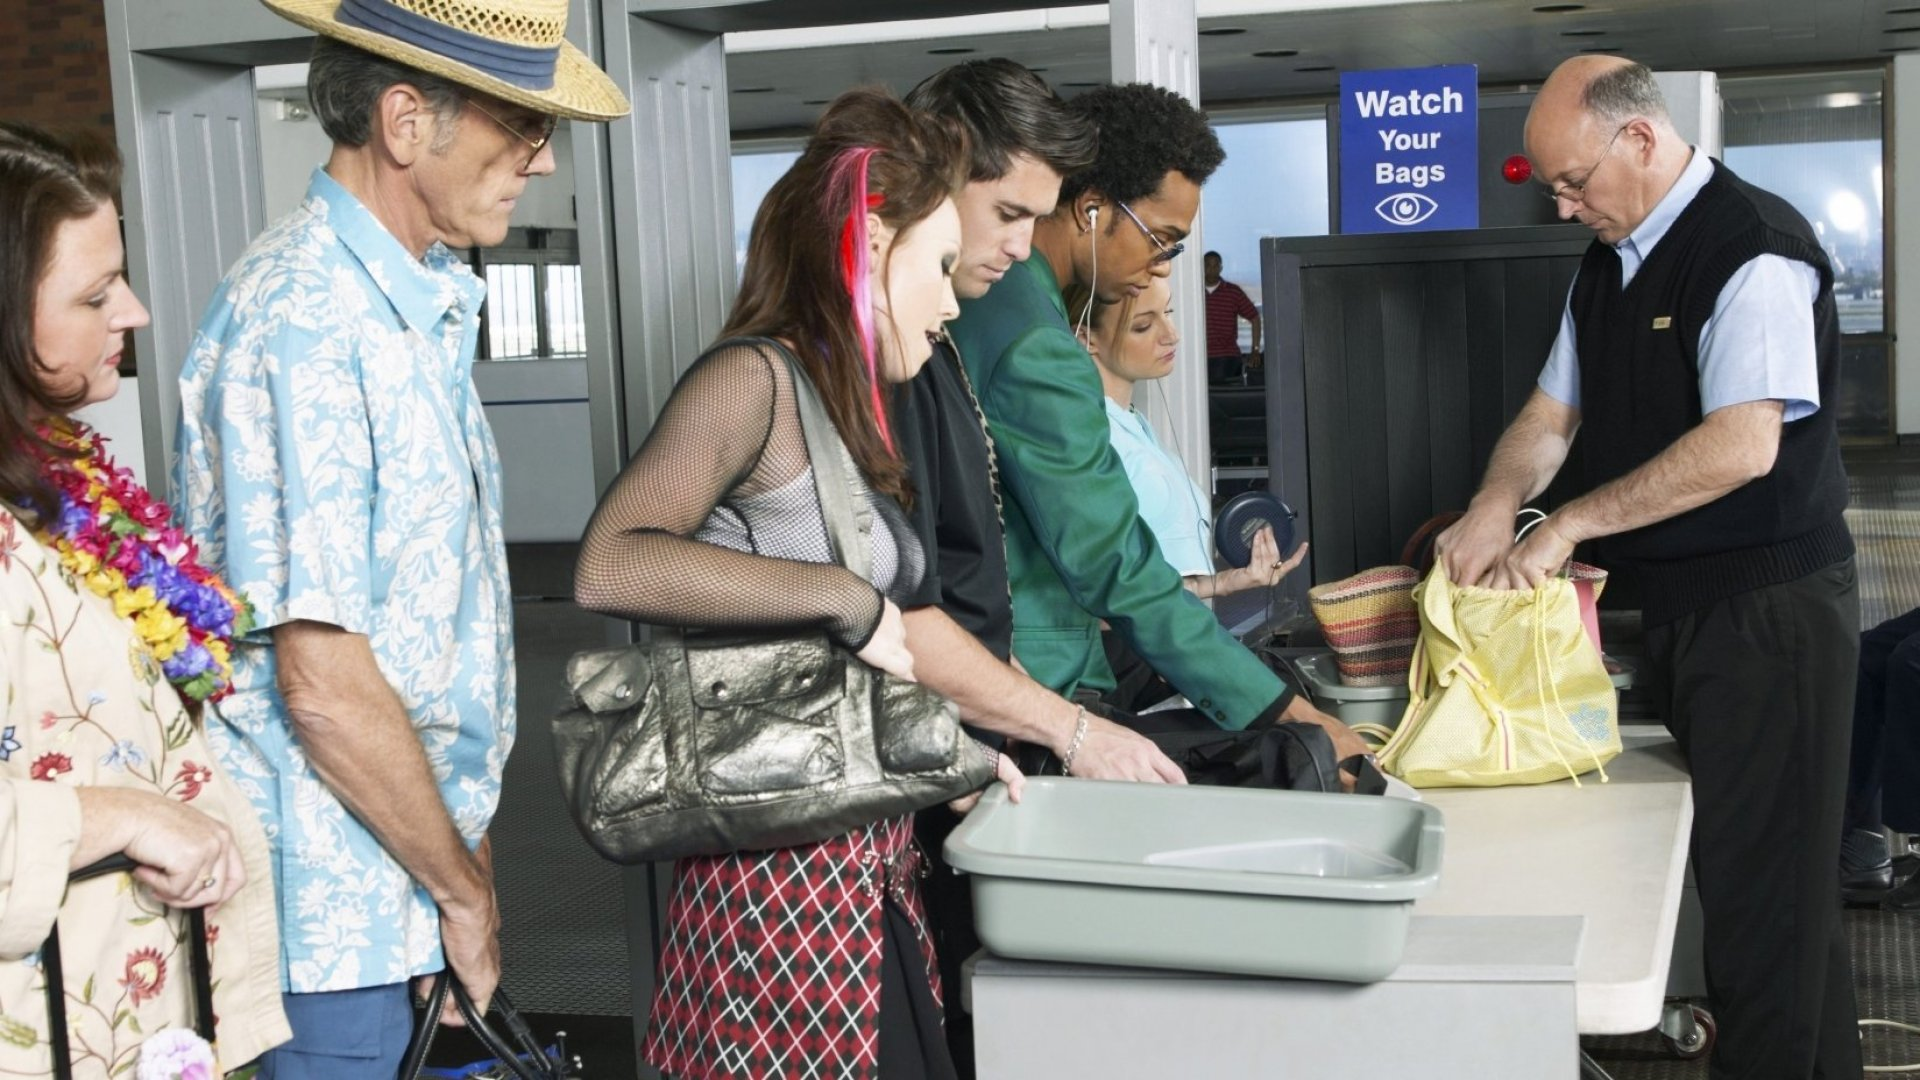 This One Small Change Could Make Air Travel Much Less Awful